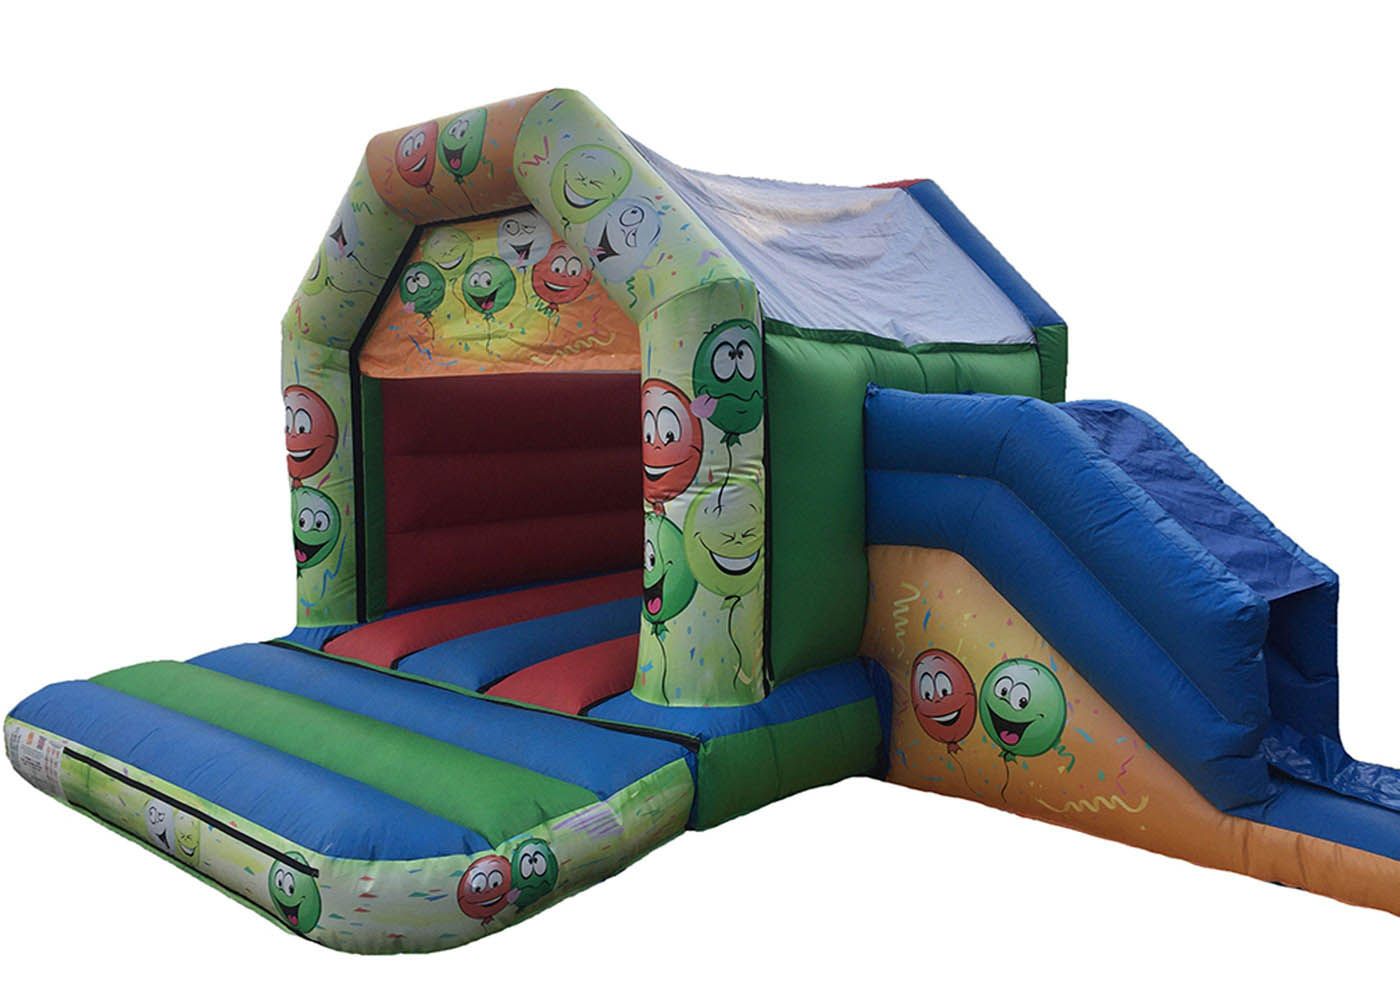 17x15-prem-bounce-happy-balloon-party-combi-compressor